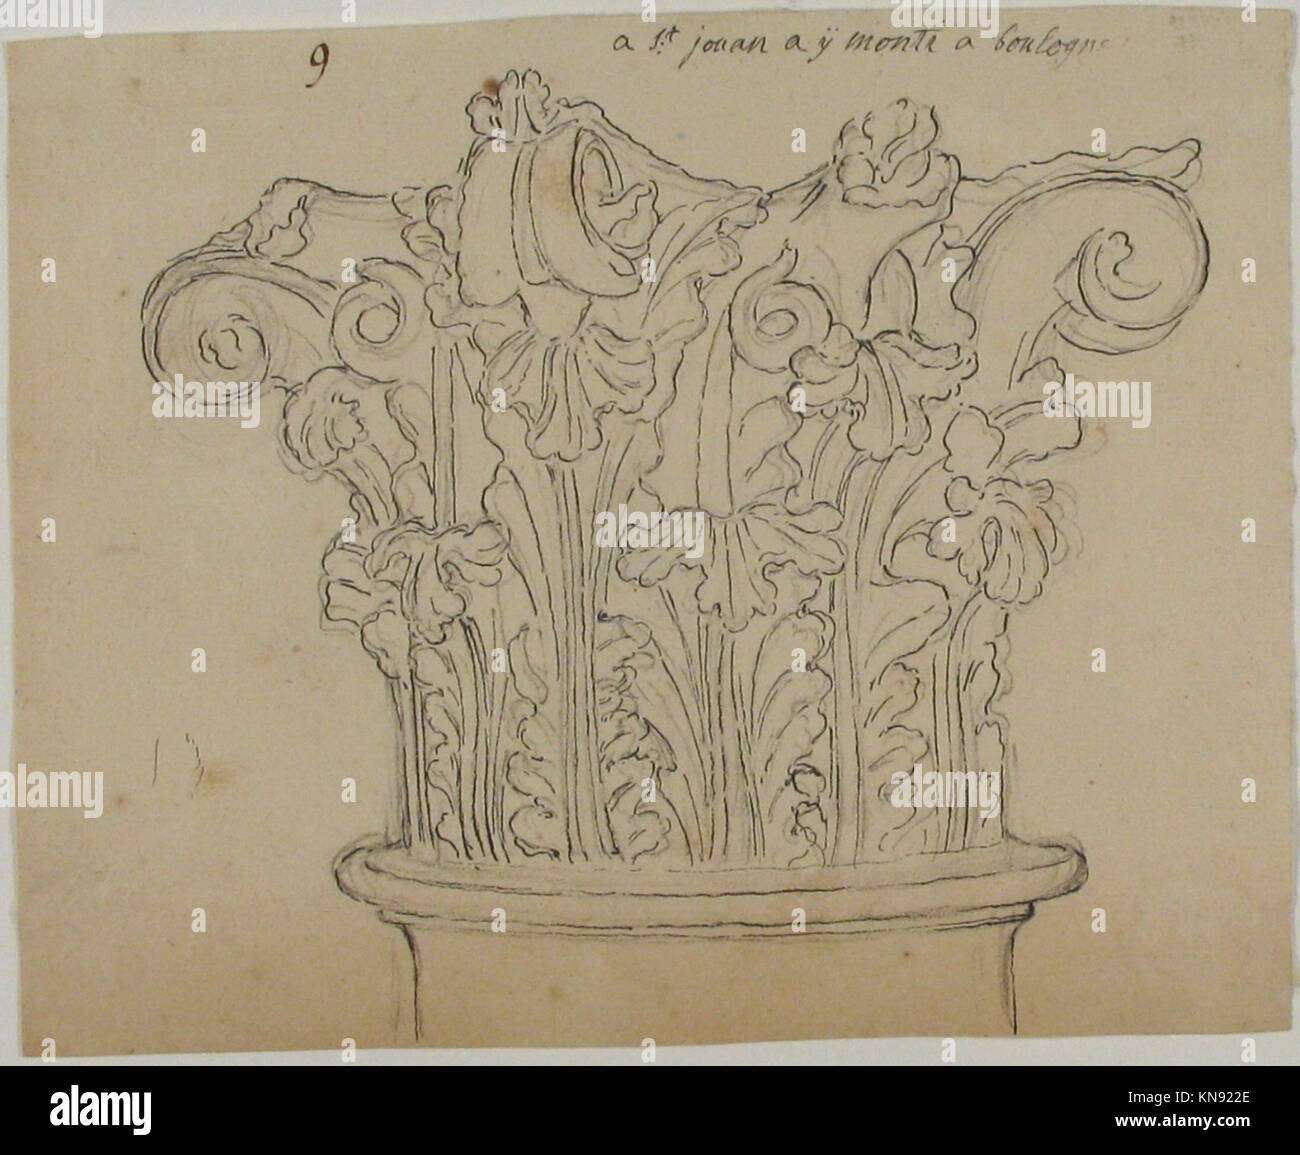 Capital with Acanthus Leaves MET 63.712.77 356272 - Stock Image